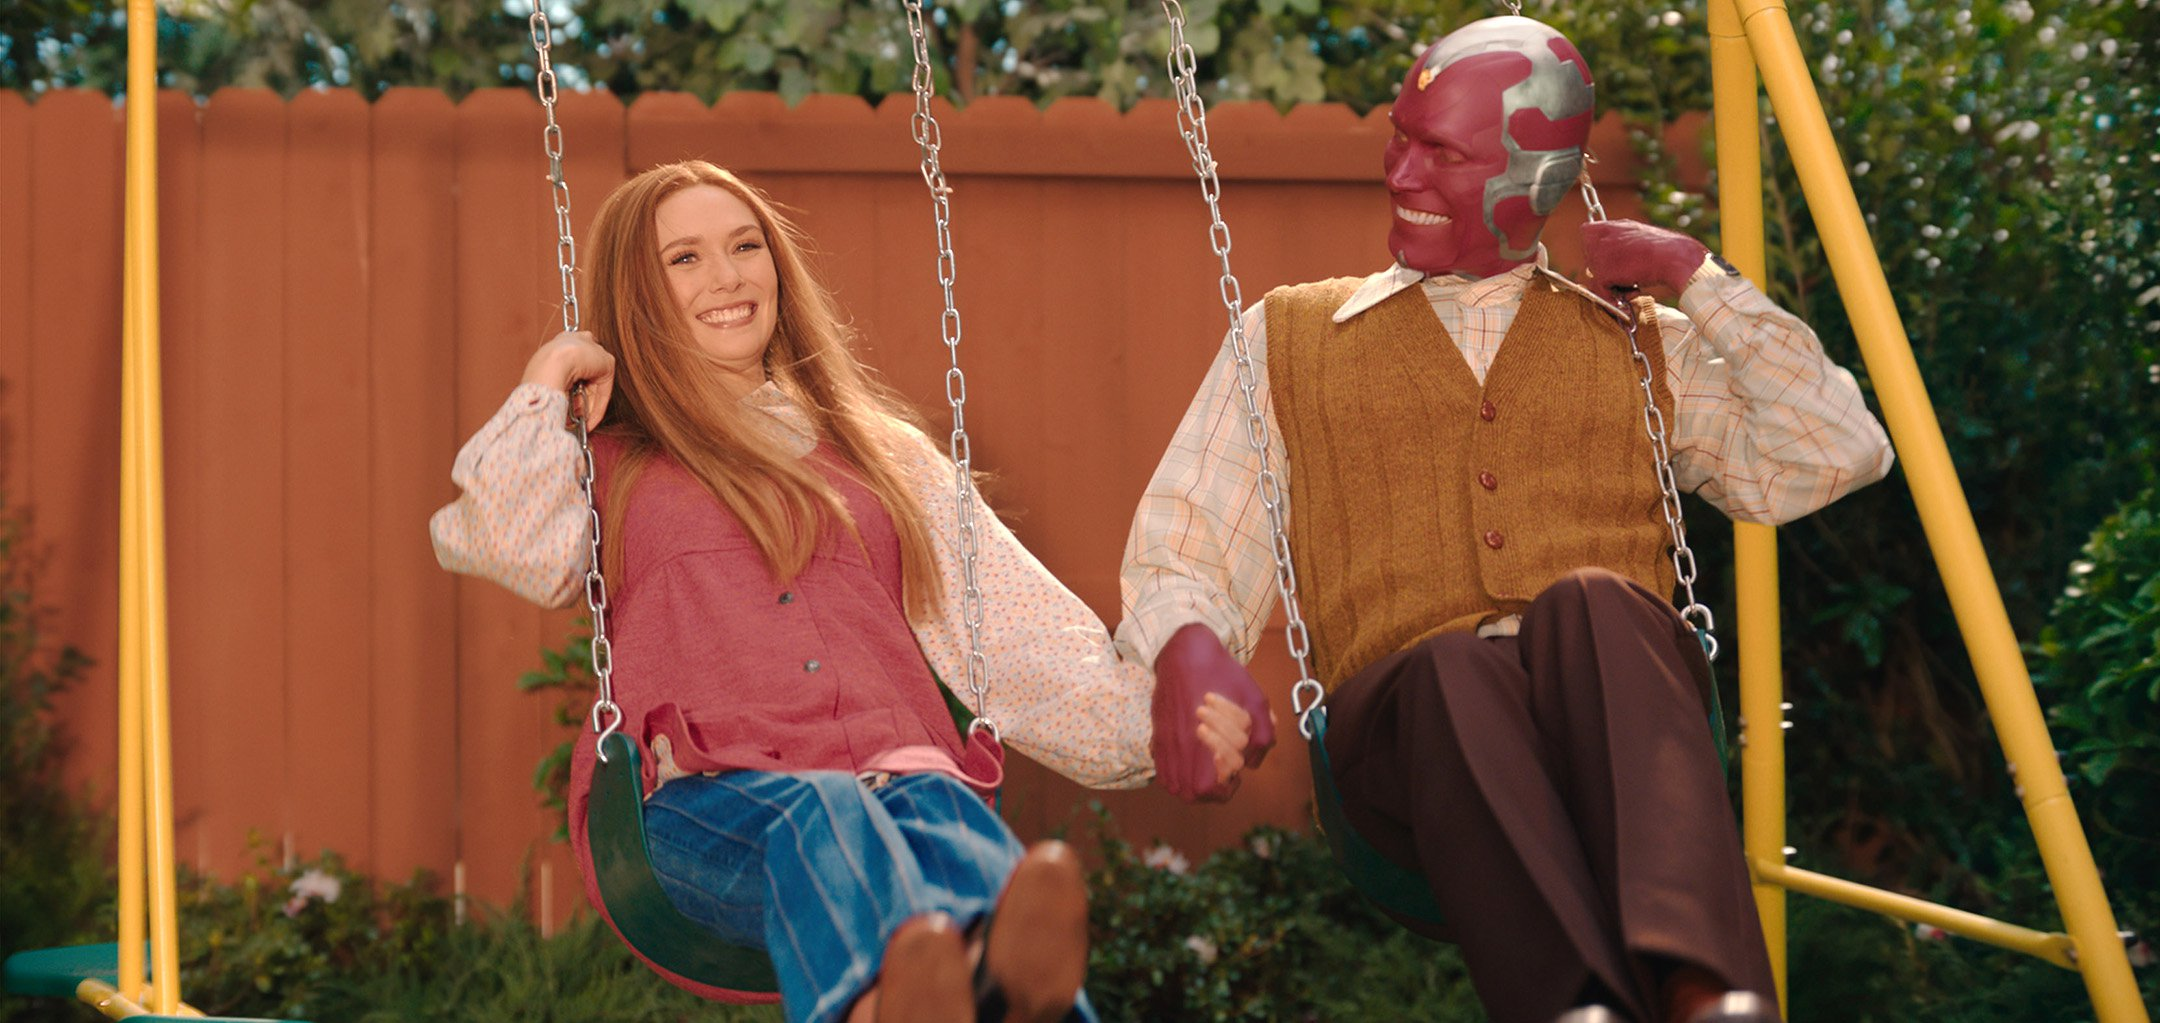 Elizabeth Olsen and Paul Bettany smilin on a swing set - still from WandaVision (2021)